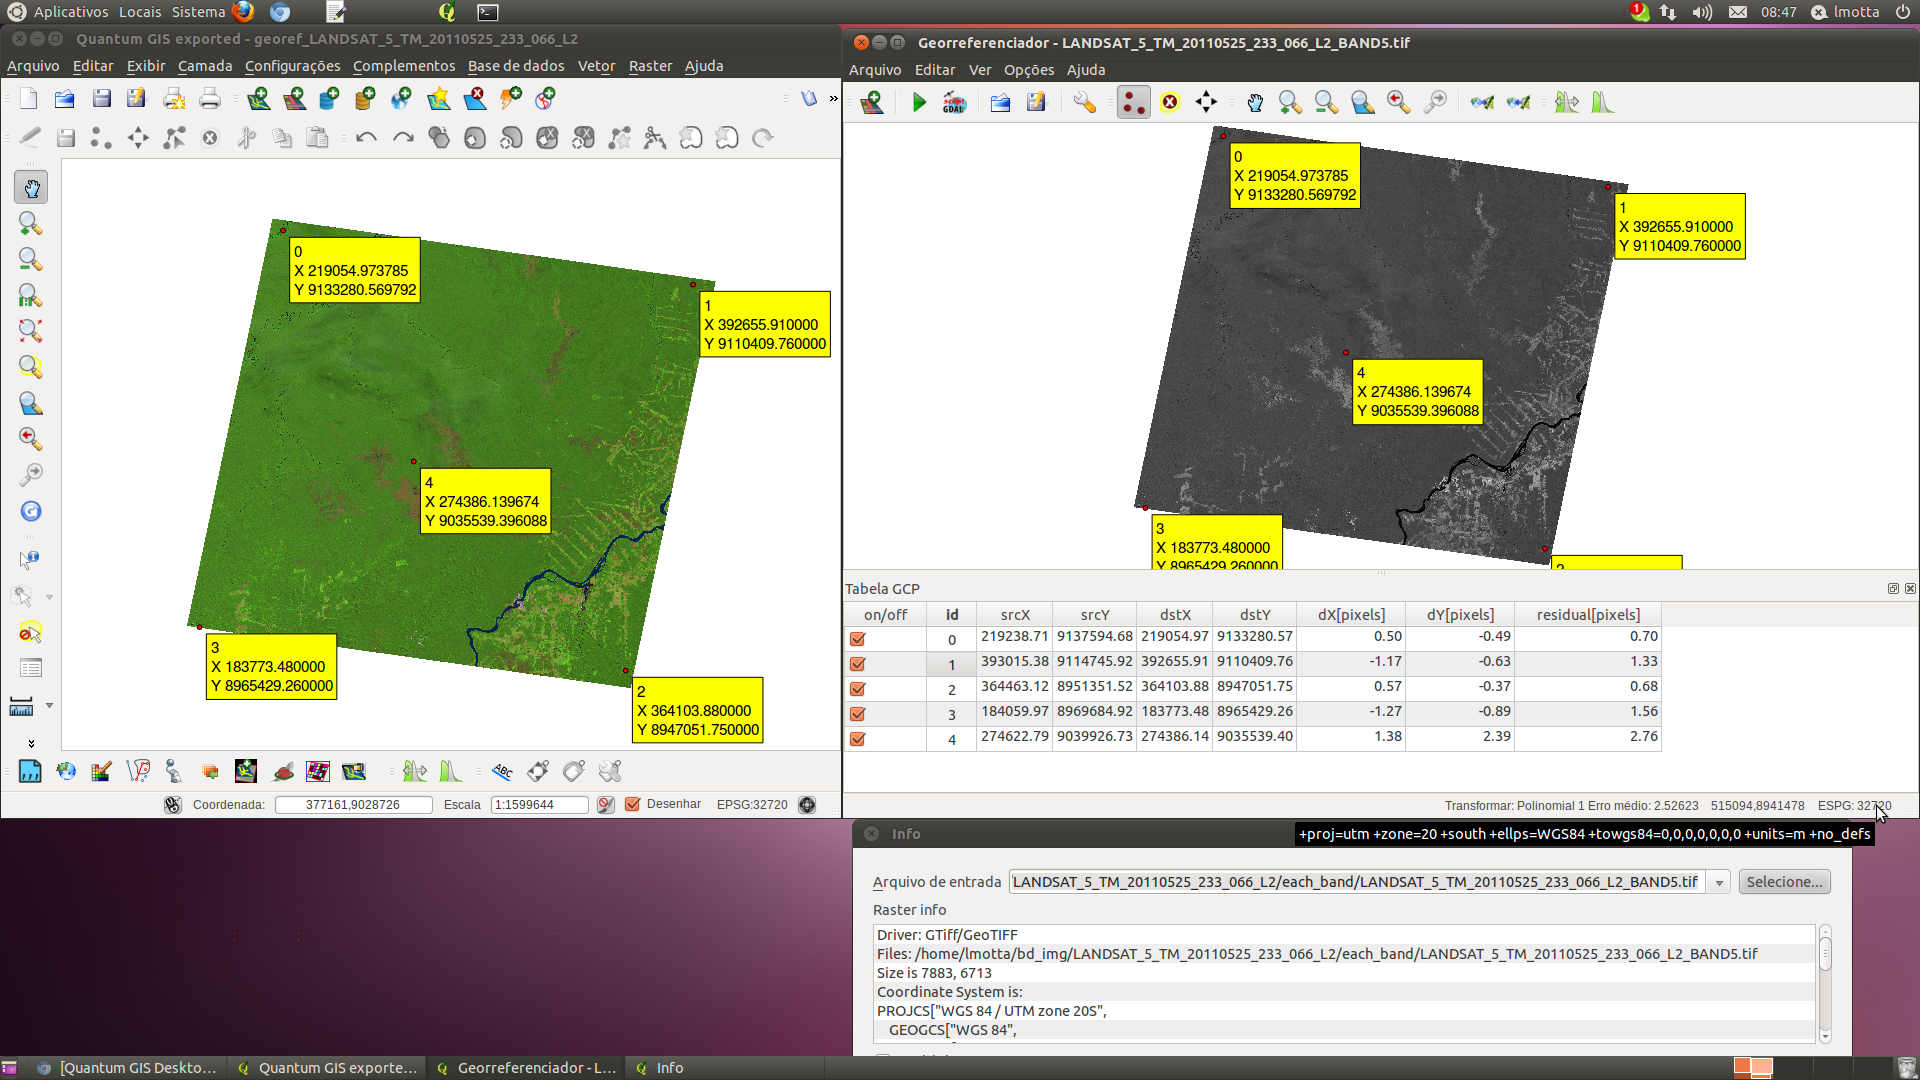 Bug report 2465 georeferencer does not correctly handle files georeferencepathg ccuart Choice Image